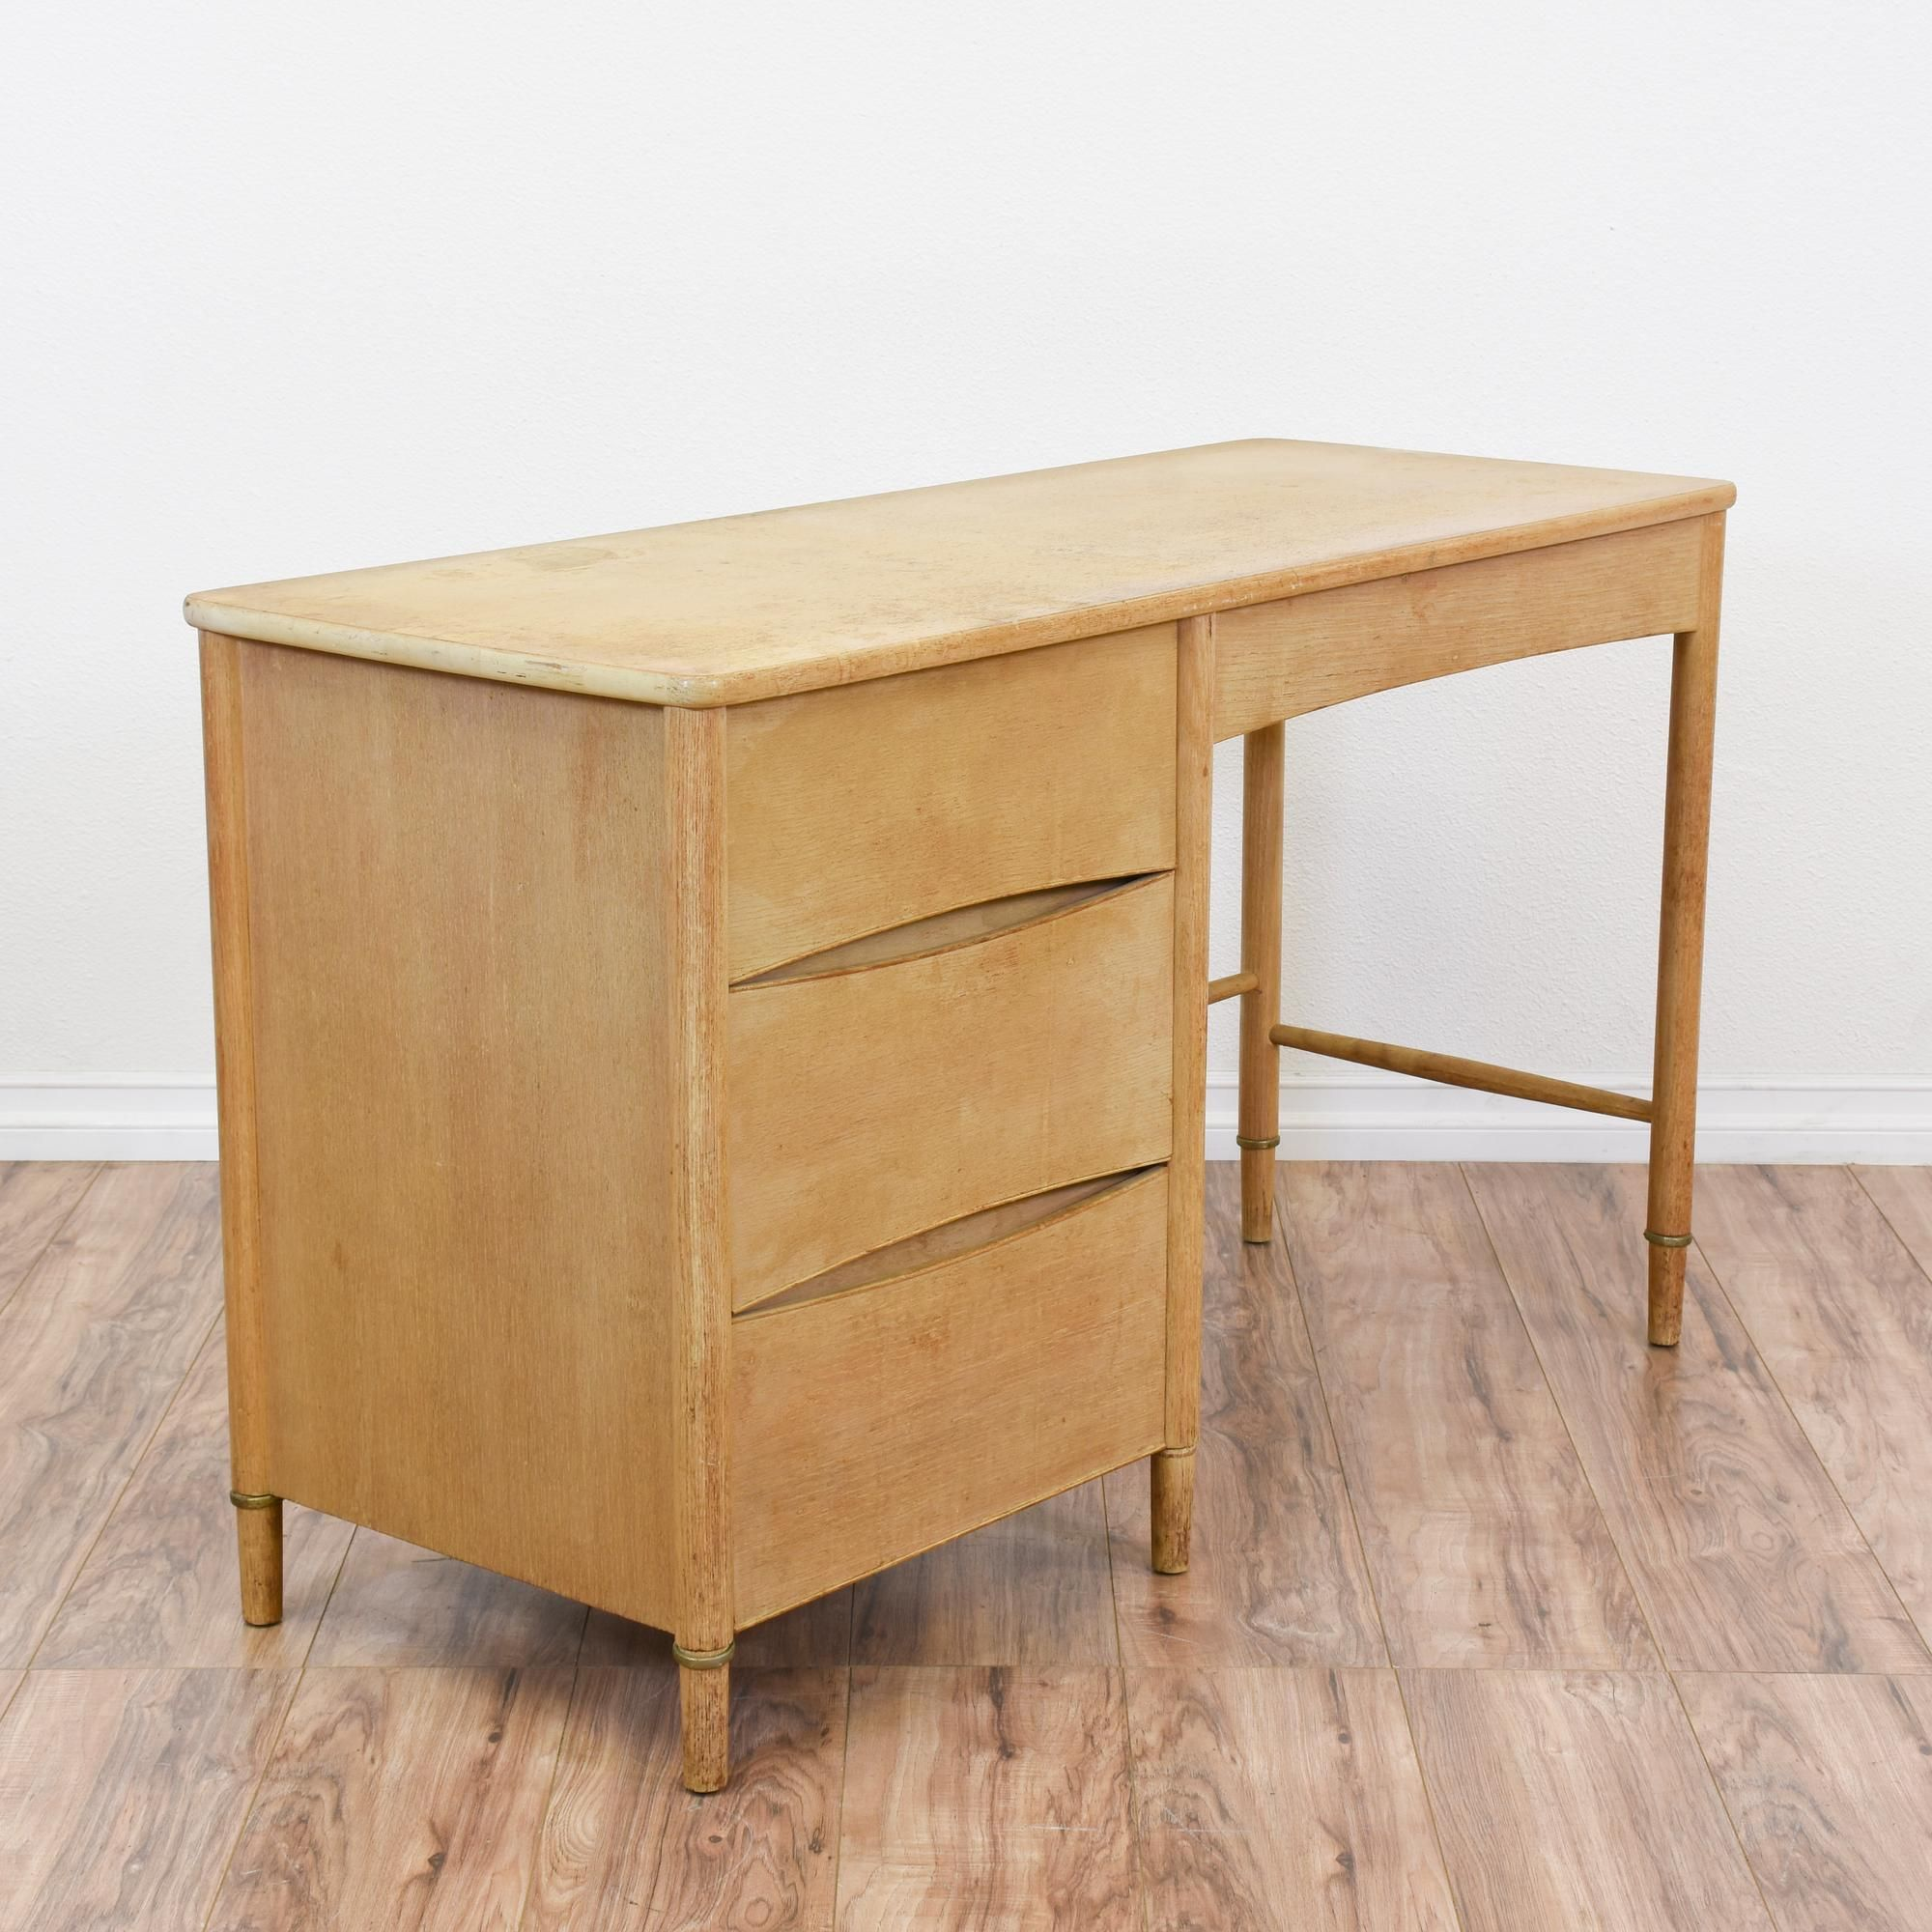 This Mengel Desk Is Featured In A Solid Wood With A Light Blonde Wood Finish This Mid Century Modern De Light Wood Desk Mid Century Modern Desk Stylish Desk